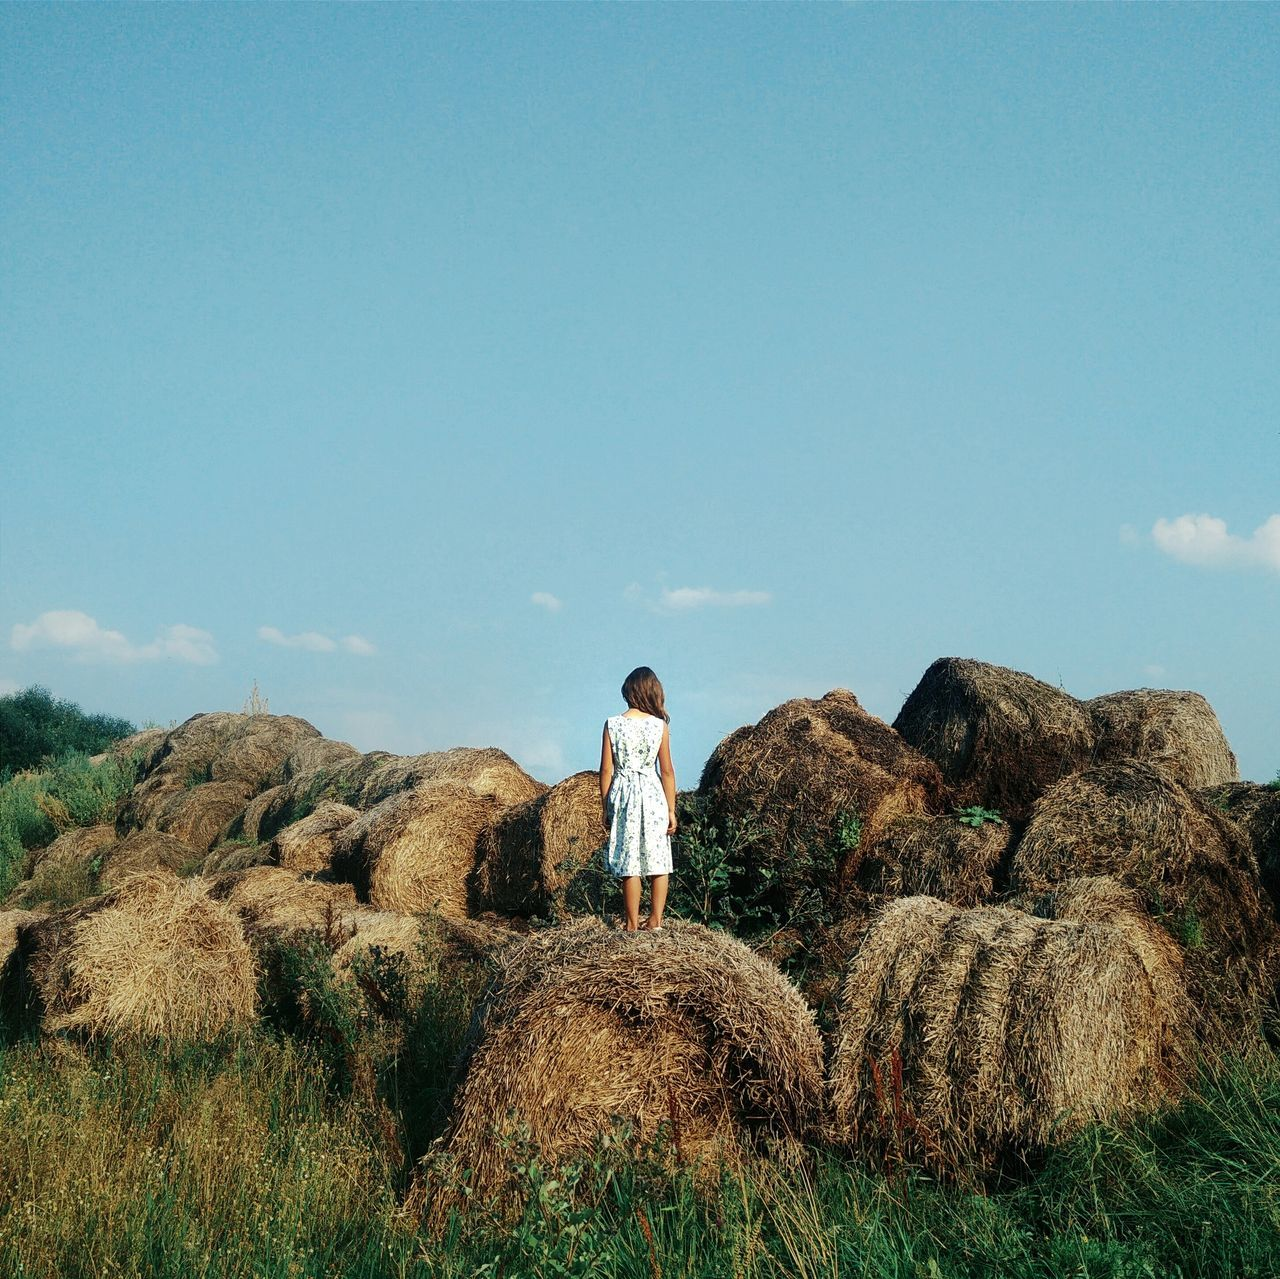 Rear view of young woman standing hay bale against blue sky